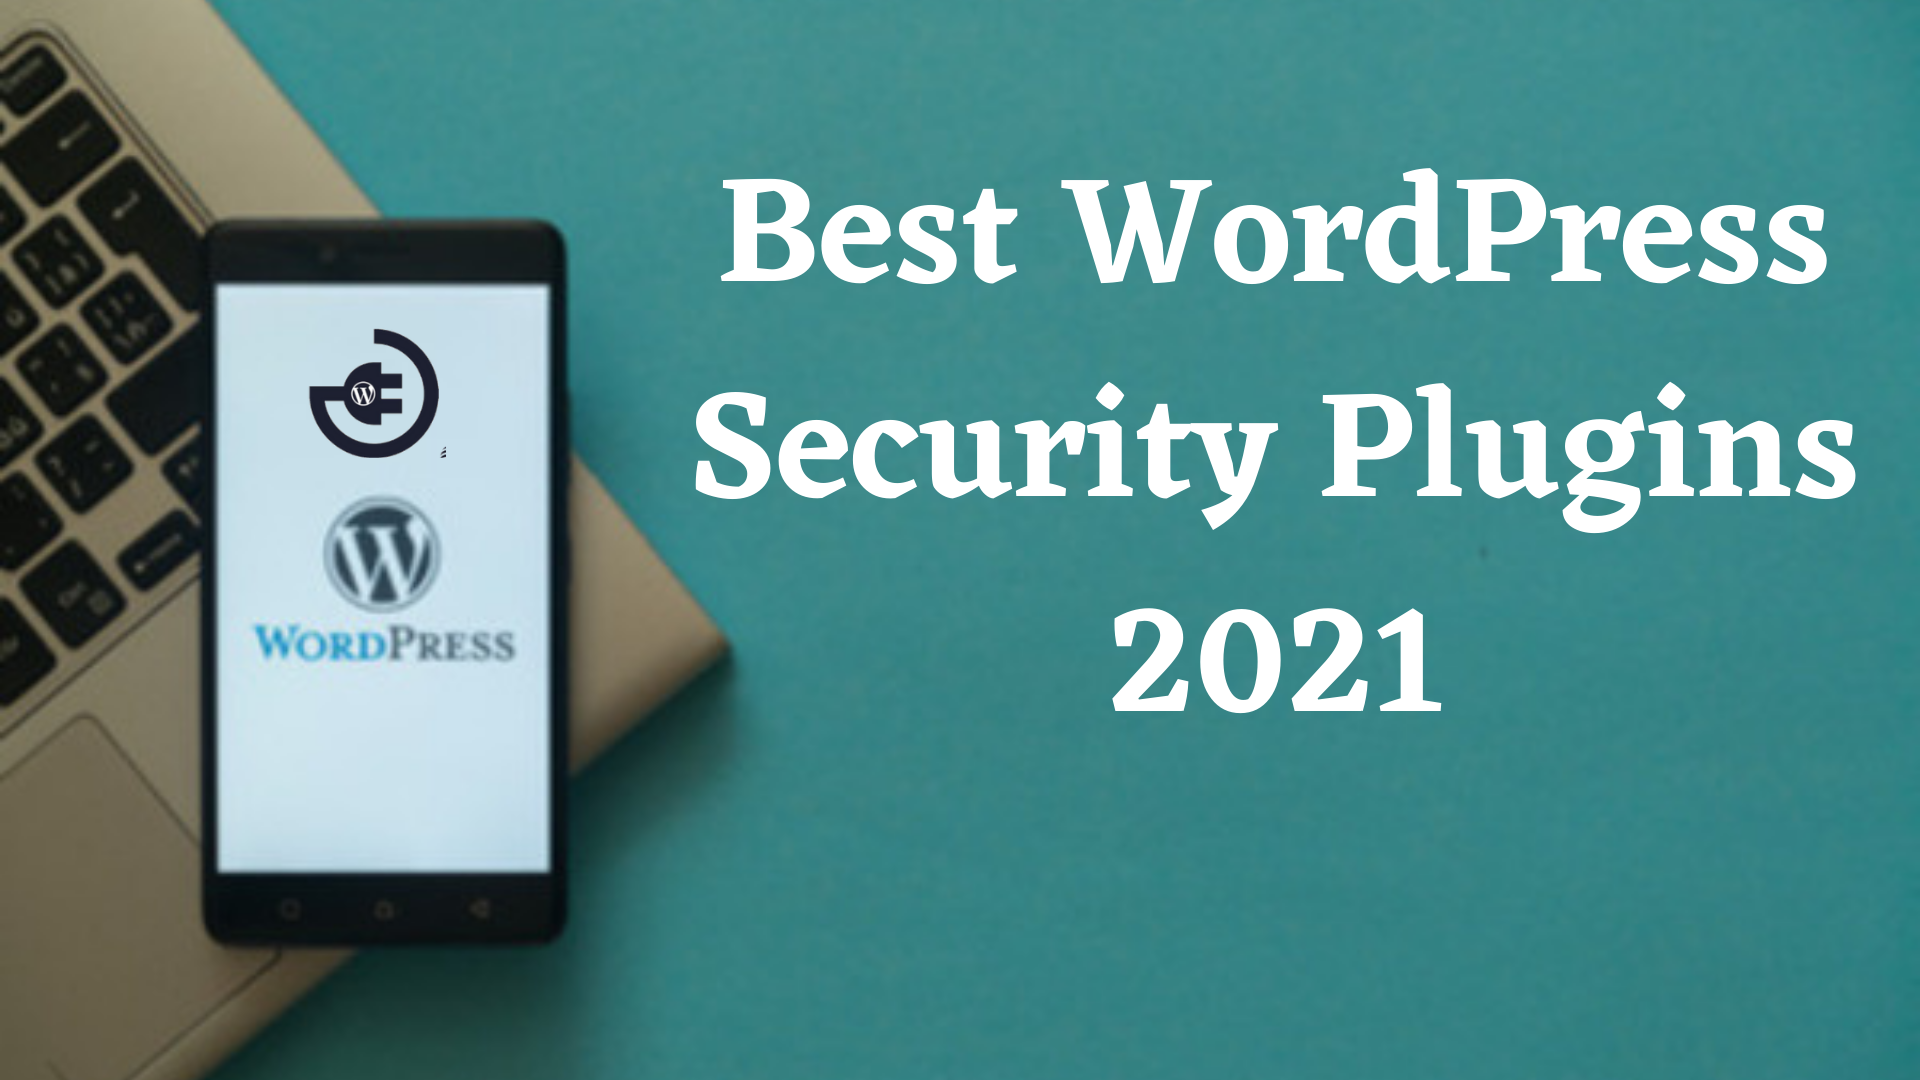 Best WordPress Security Plugins 2021 - Top 5 Recommend Security Plugins for Website [Updated 2021]